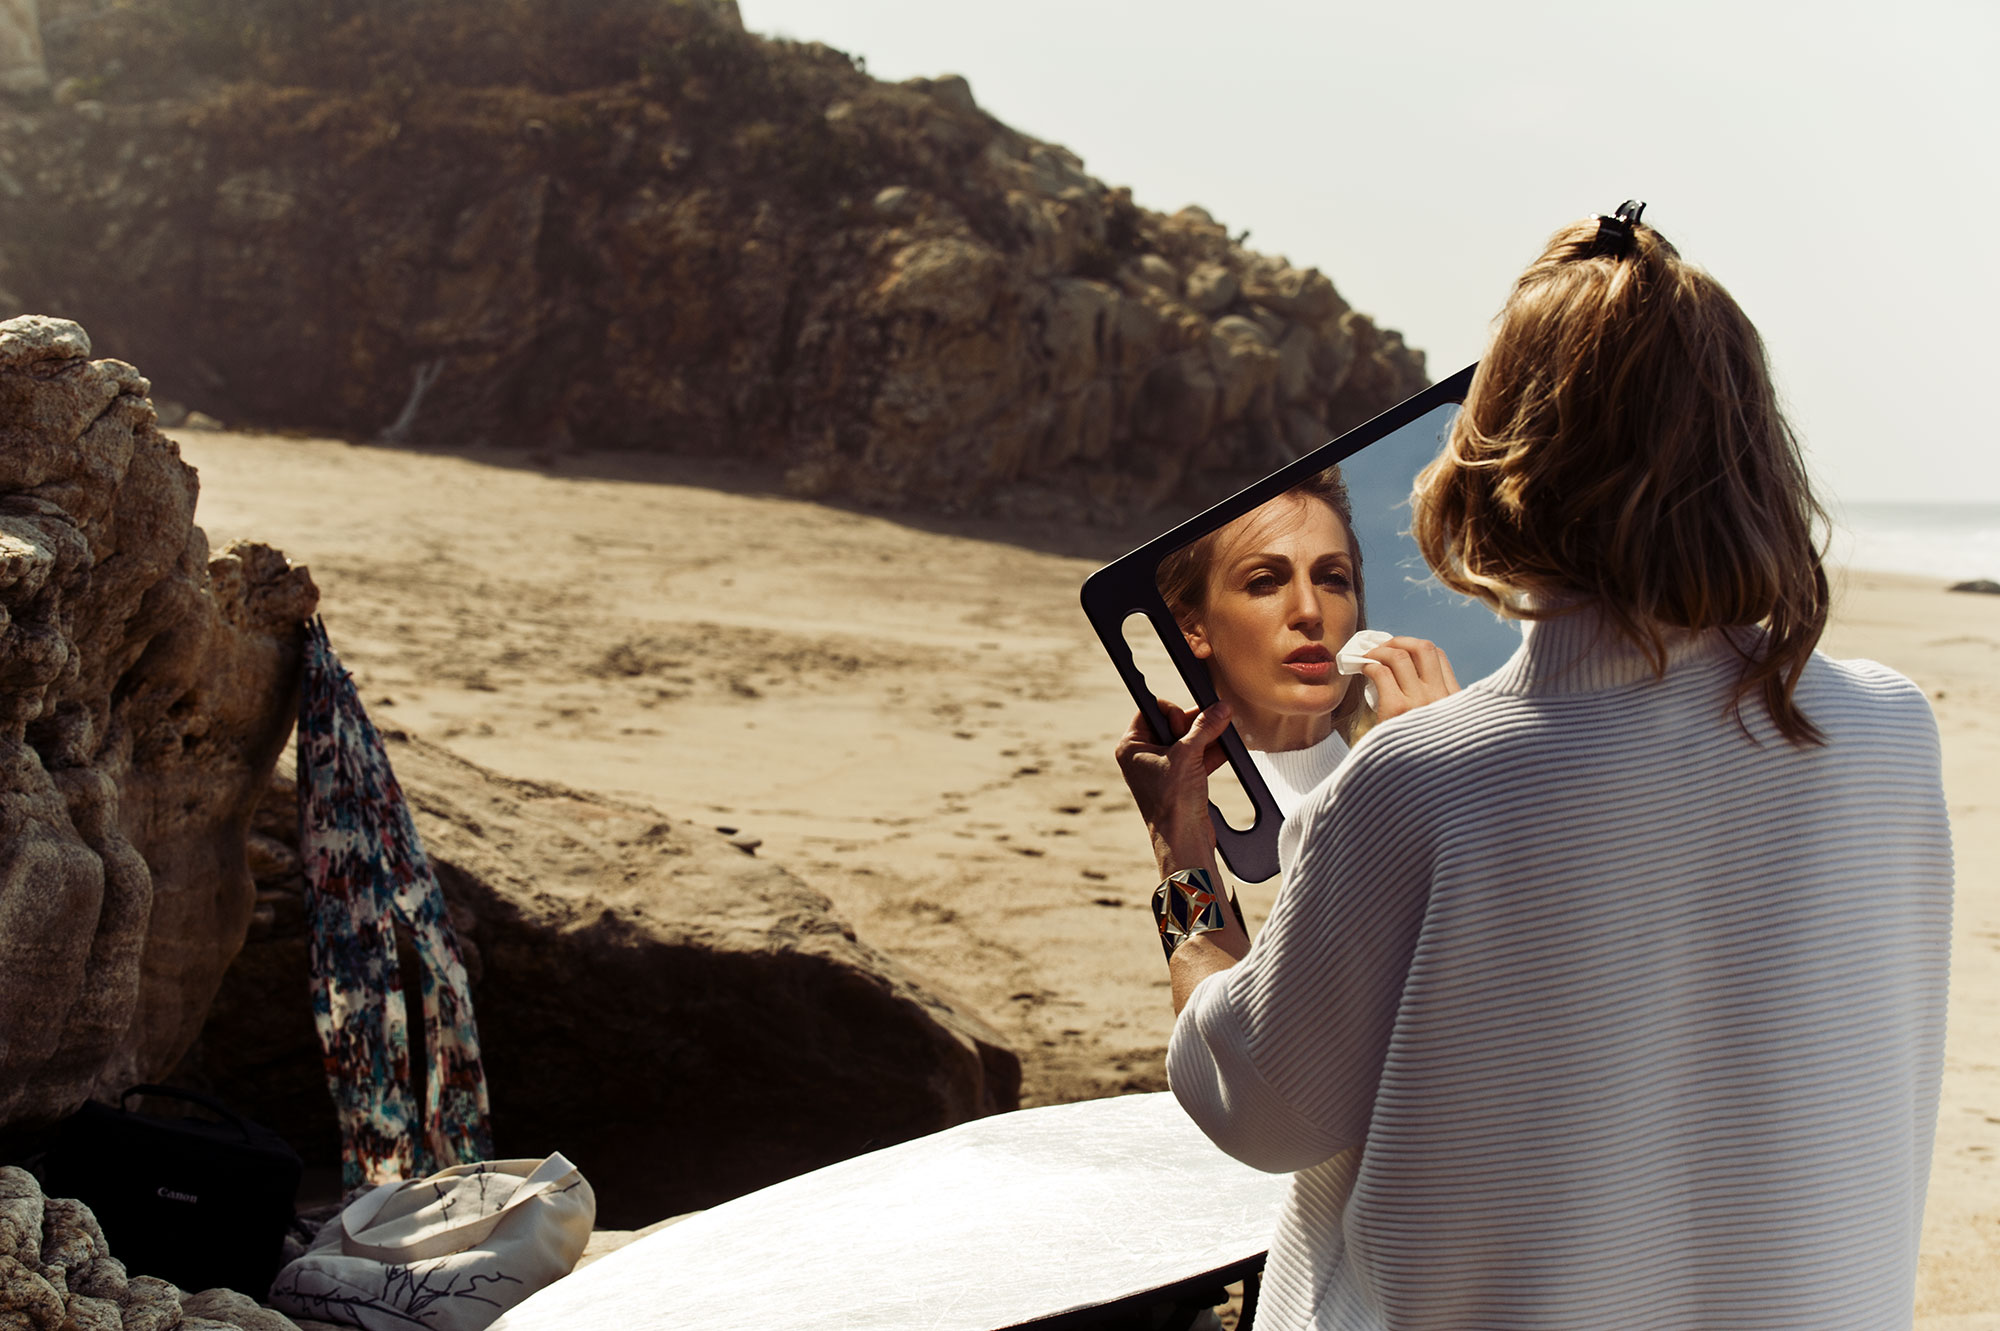 Puerto Escondido, Mexico. Behind the scene by the ocean of  a model prepping for the photo shoot.